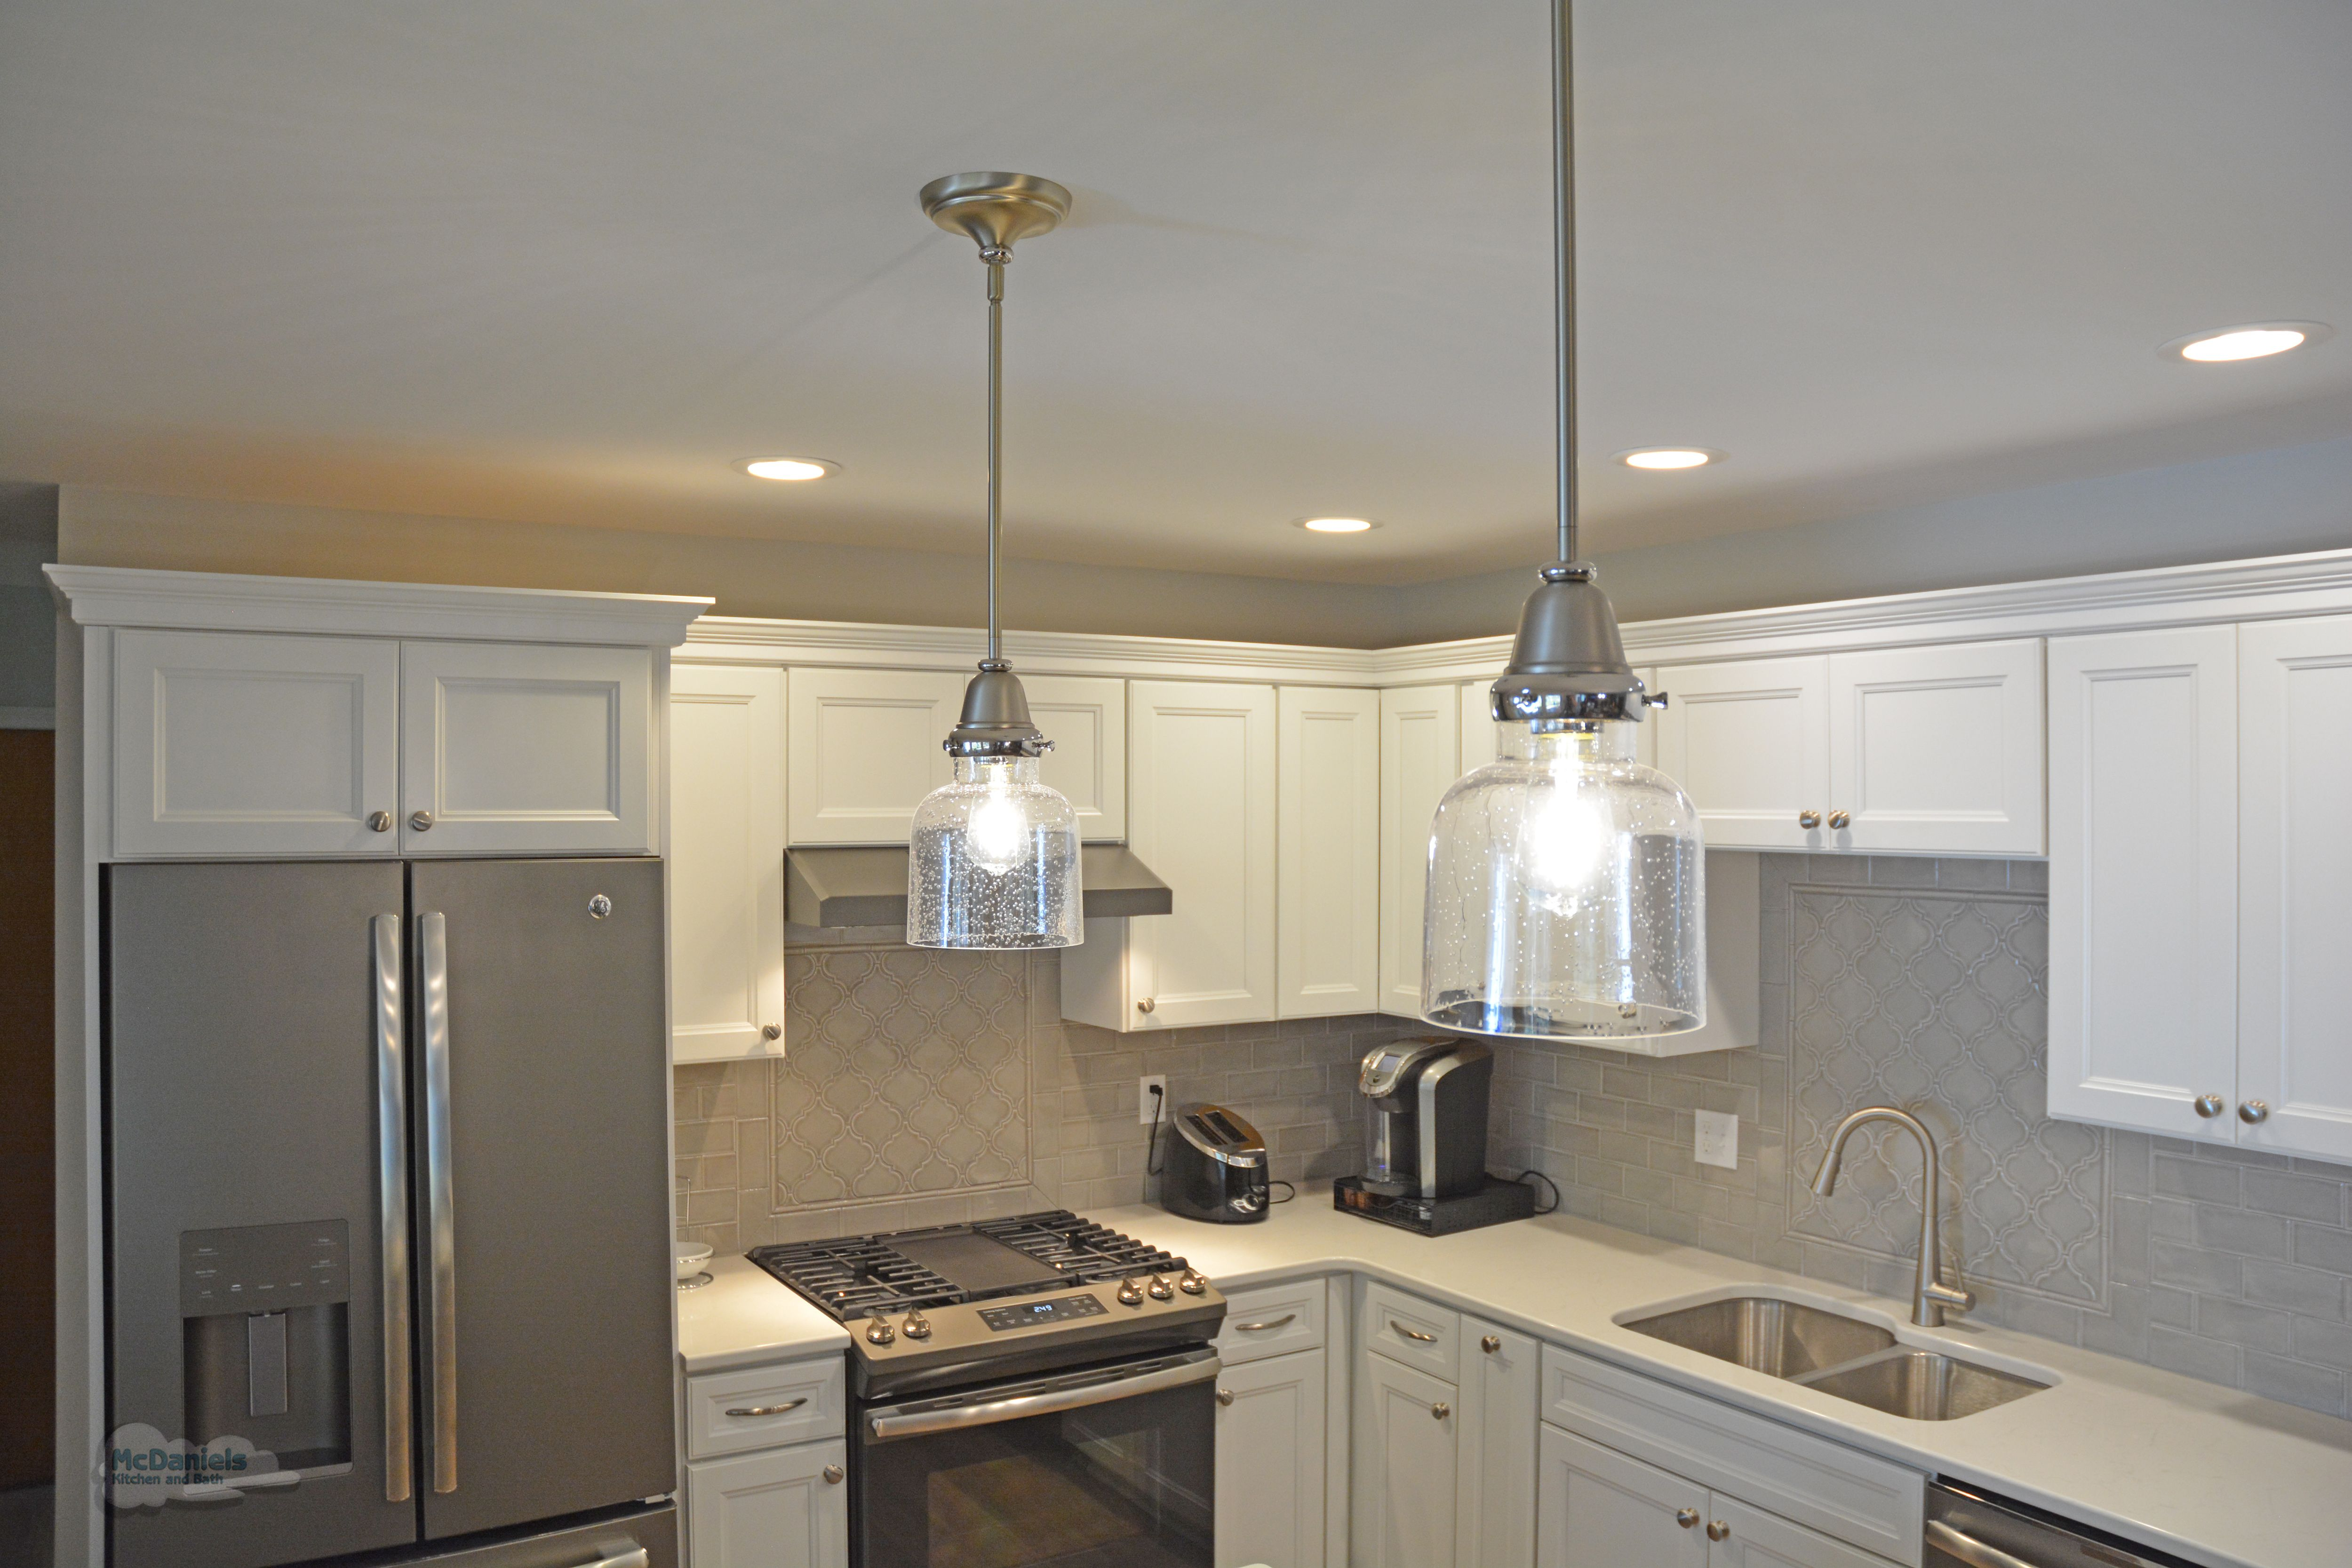 This Kitchen Design In Lansing Features Purestyle Laminate Cabinets From Aristokraft The Base Cabi Kitchen And Bath Remodeling Kitchen Design Bathroom Design